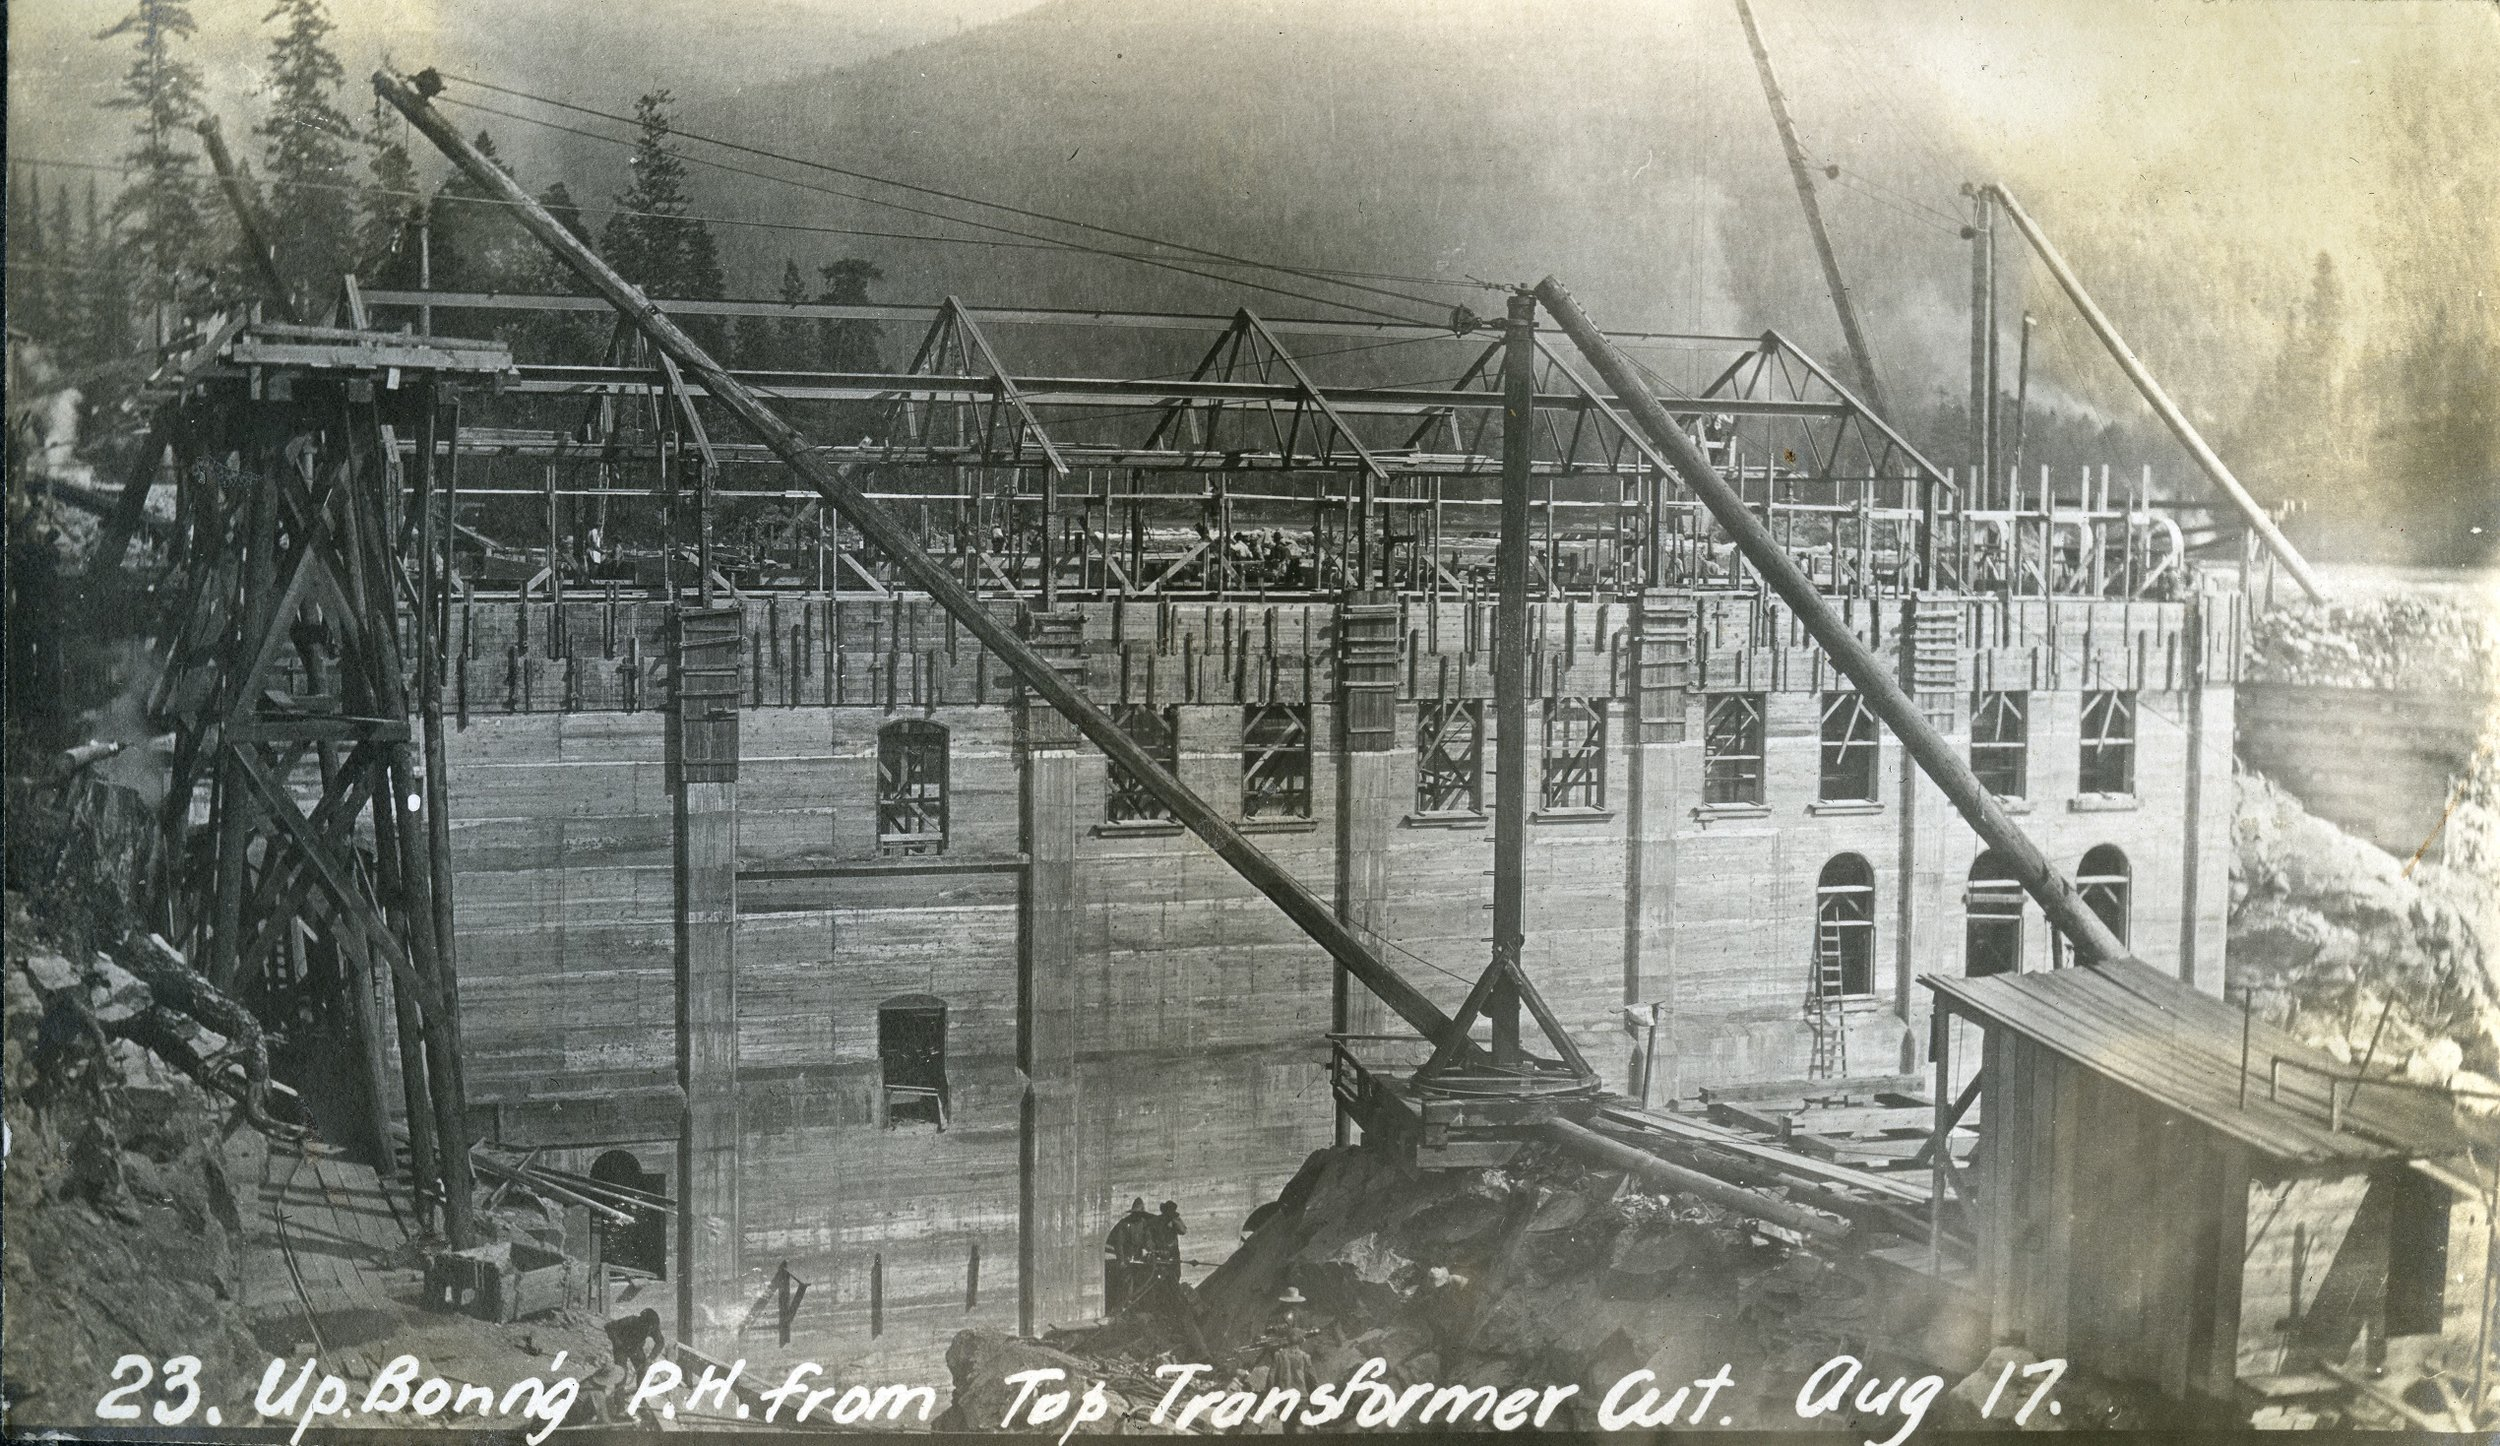 1906-7:No. 2 Plant is Built - To keep up with increasing energy demands, a second dam was built on the Kootenay River above the previous No. 1 Plant on the Upper Bonnington Falls. This dam is expanded in 1938 and again in 1941.Photo 2338.0062: The No. 2, or Upper Bonnington Plant during its construction, taken in 1906.